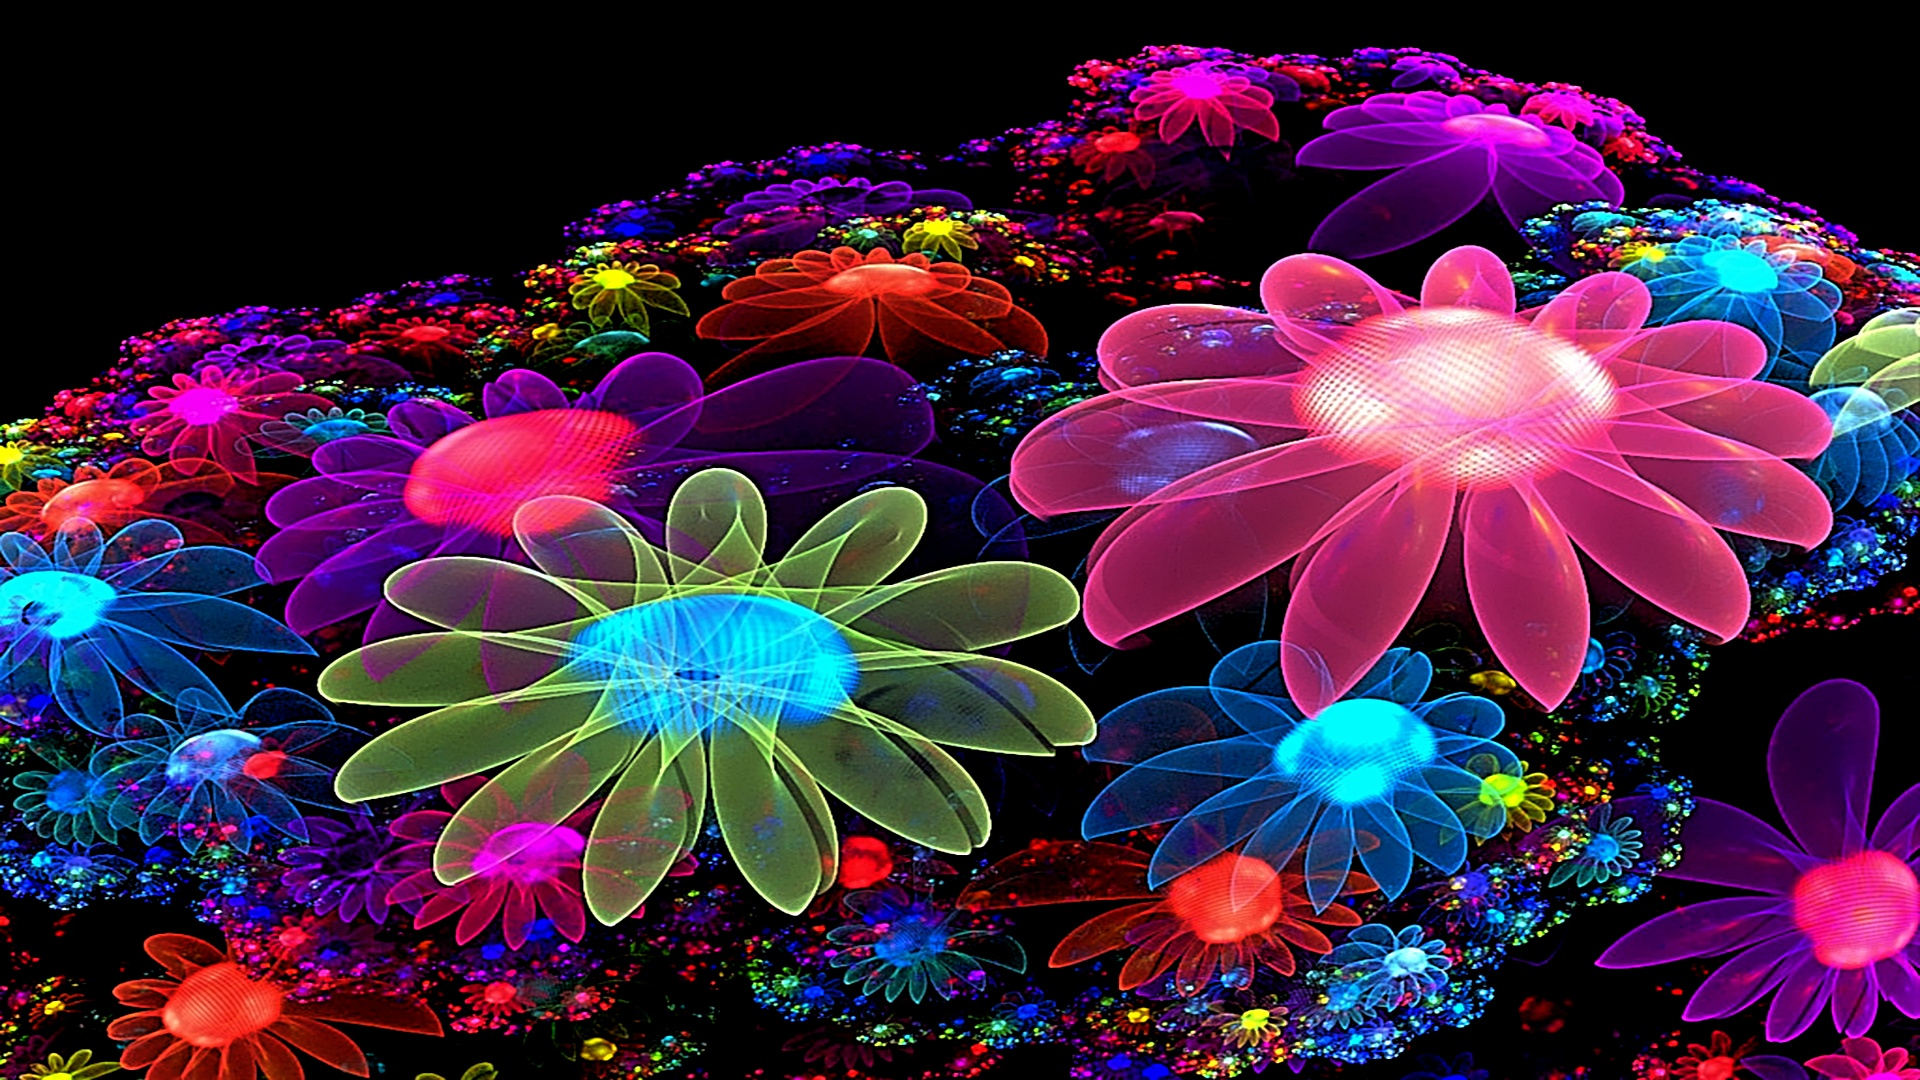 3D Wallpapers Cool Colorful Flowers Desktop Wallpapers Images 1920x1080